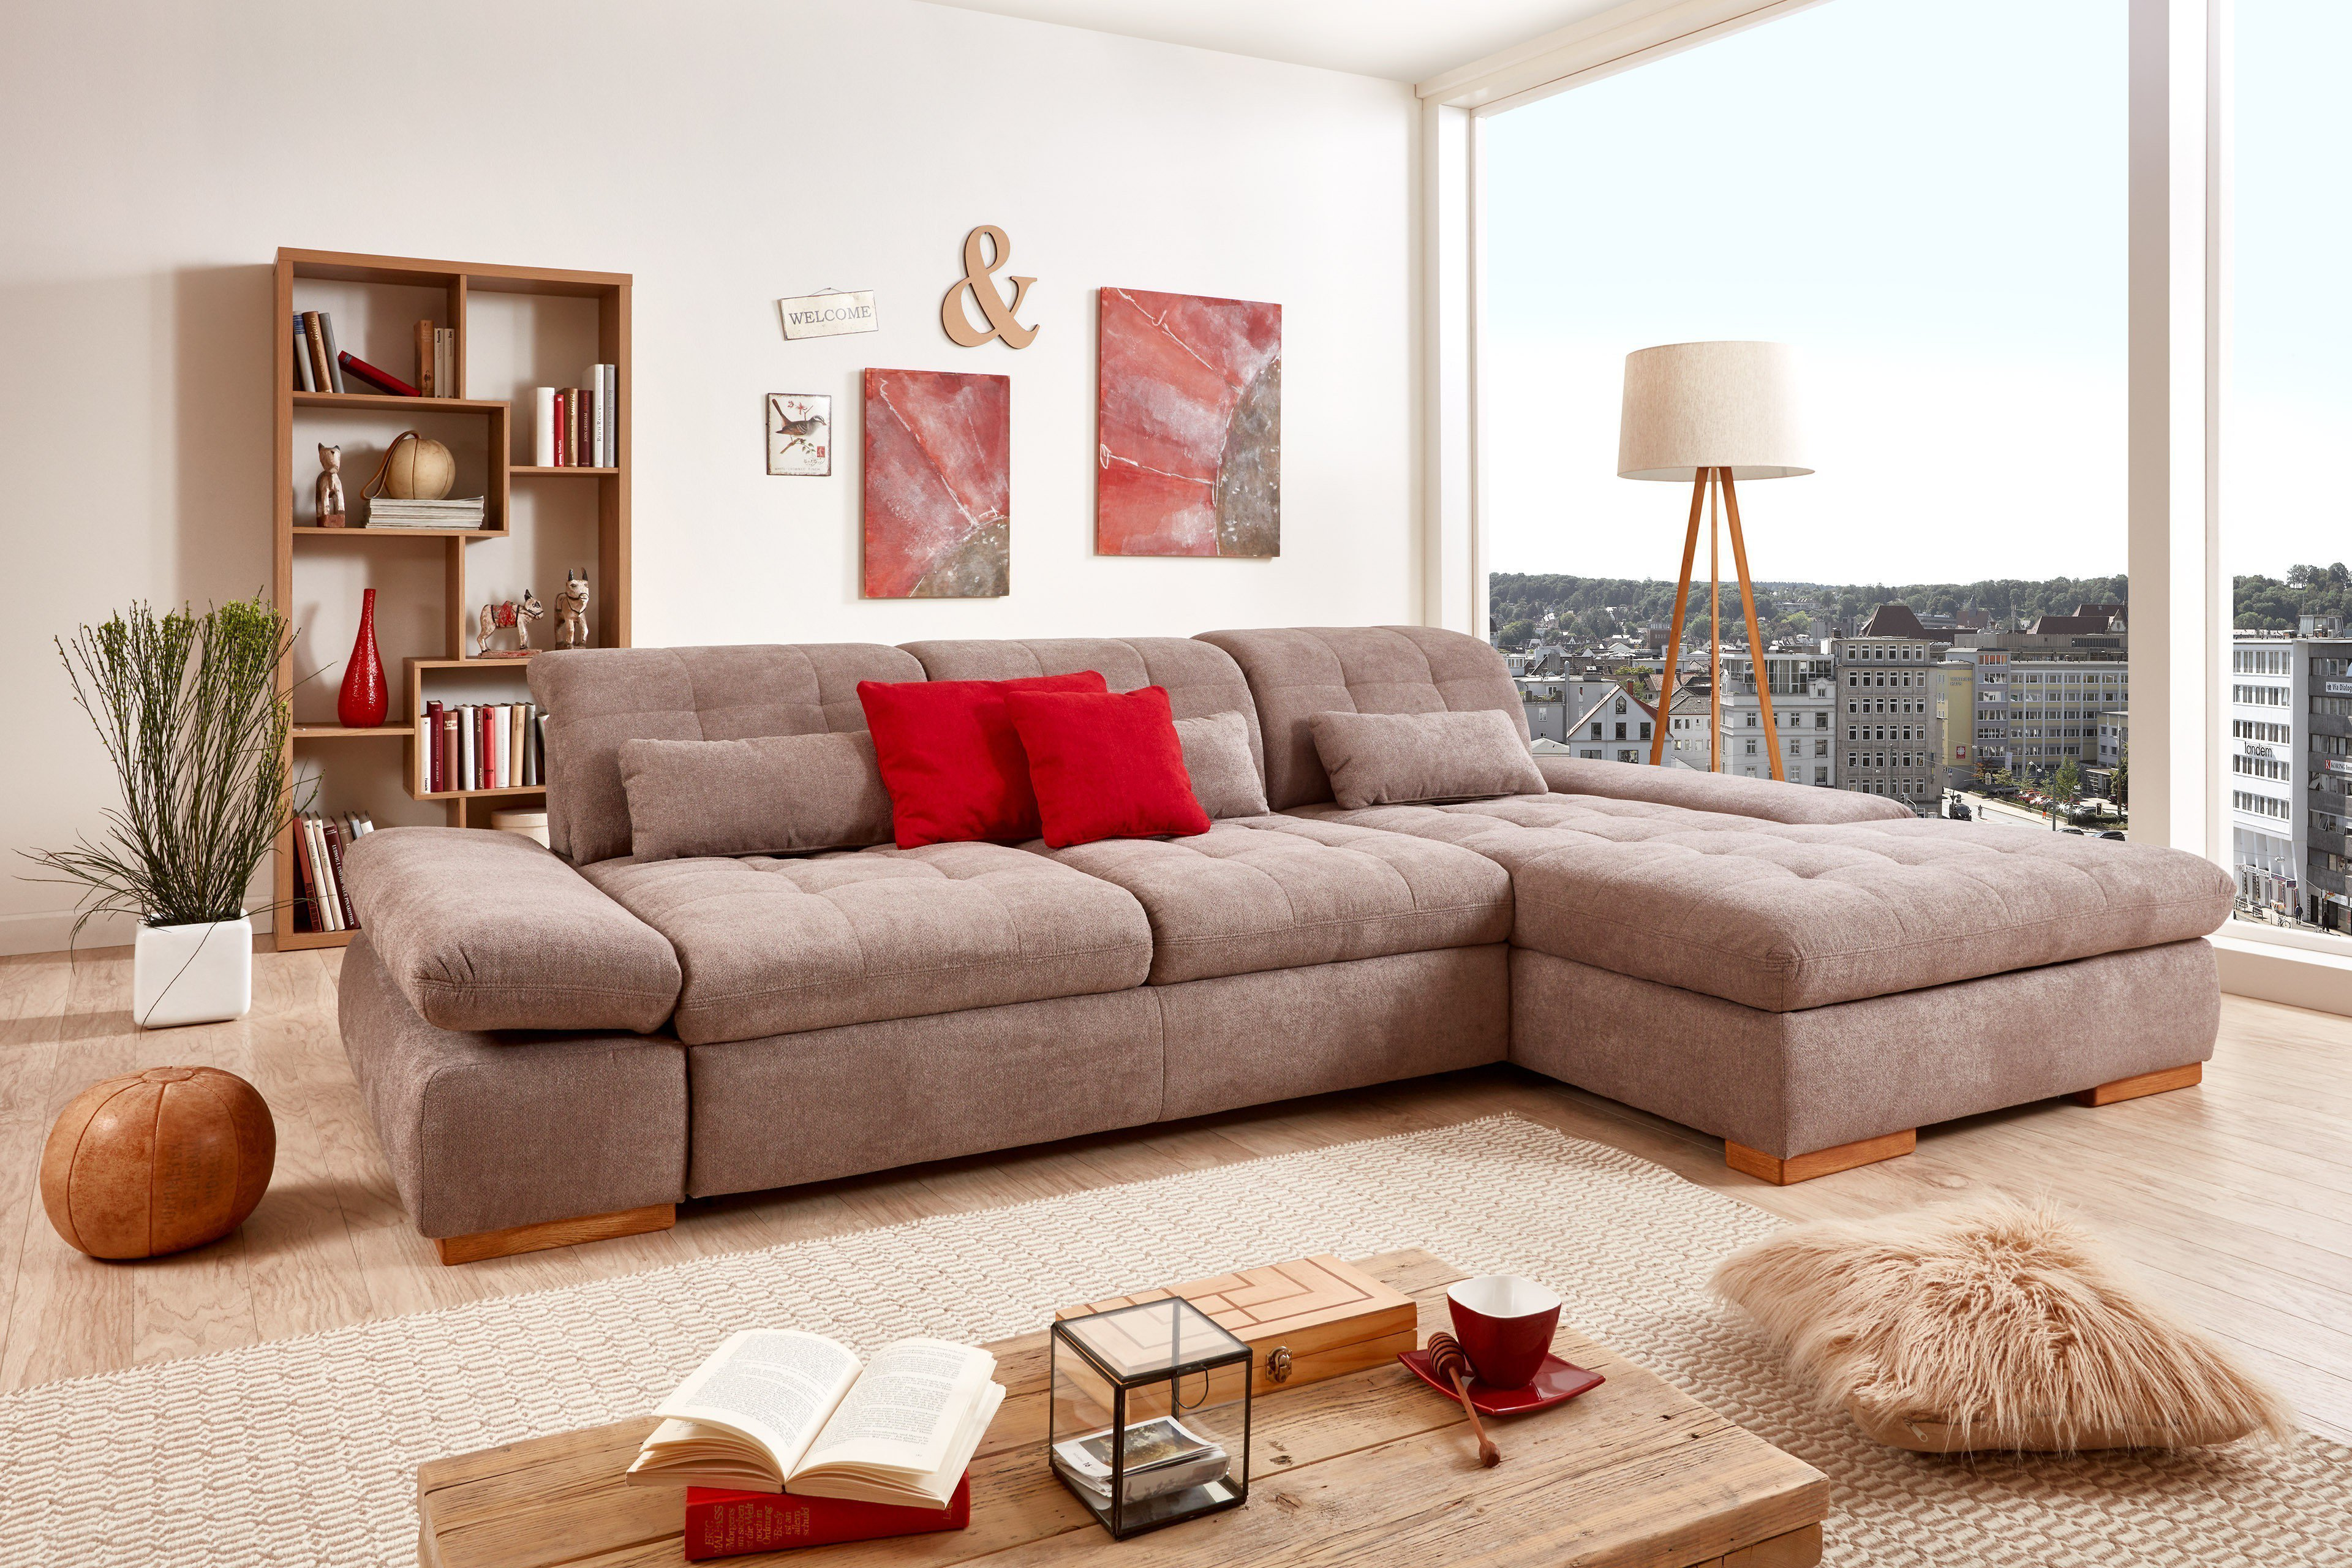 Ecksofa U Form Poco Houston Von Poco Home Trend Ecksofa Savannah